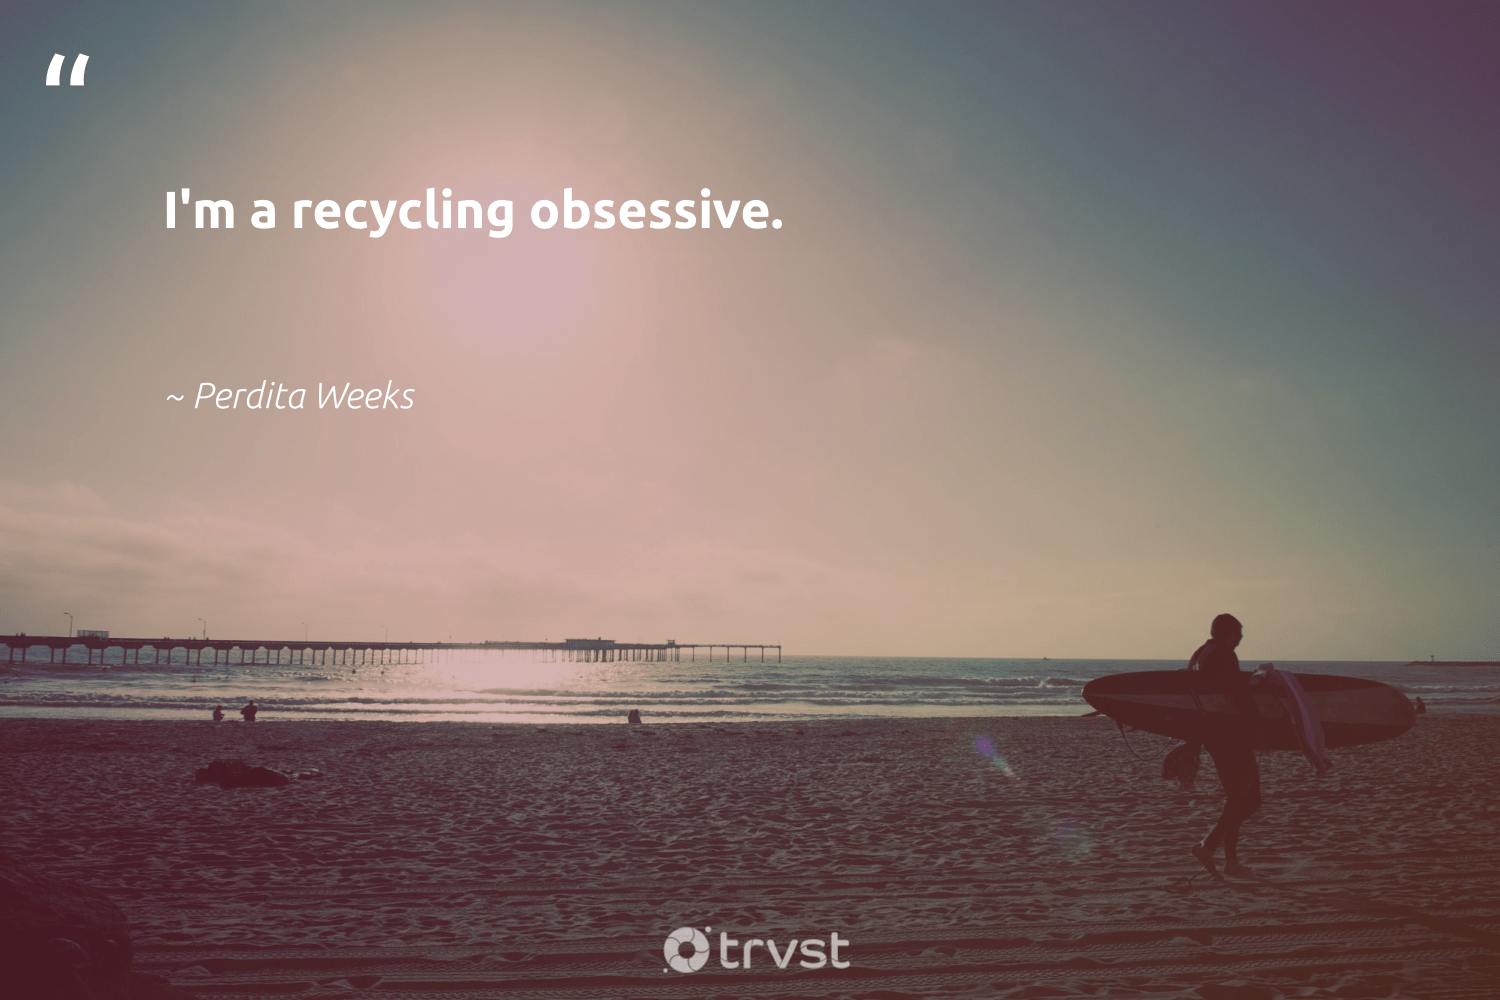 """""""I'm a recycling obsessive.""""  - Perdita Weeks #trvst #quotes #recycling #upcycling #biodegradable #wastefree #socialimpact #recycled #environment #plantbased #gogreen #reduce"""